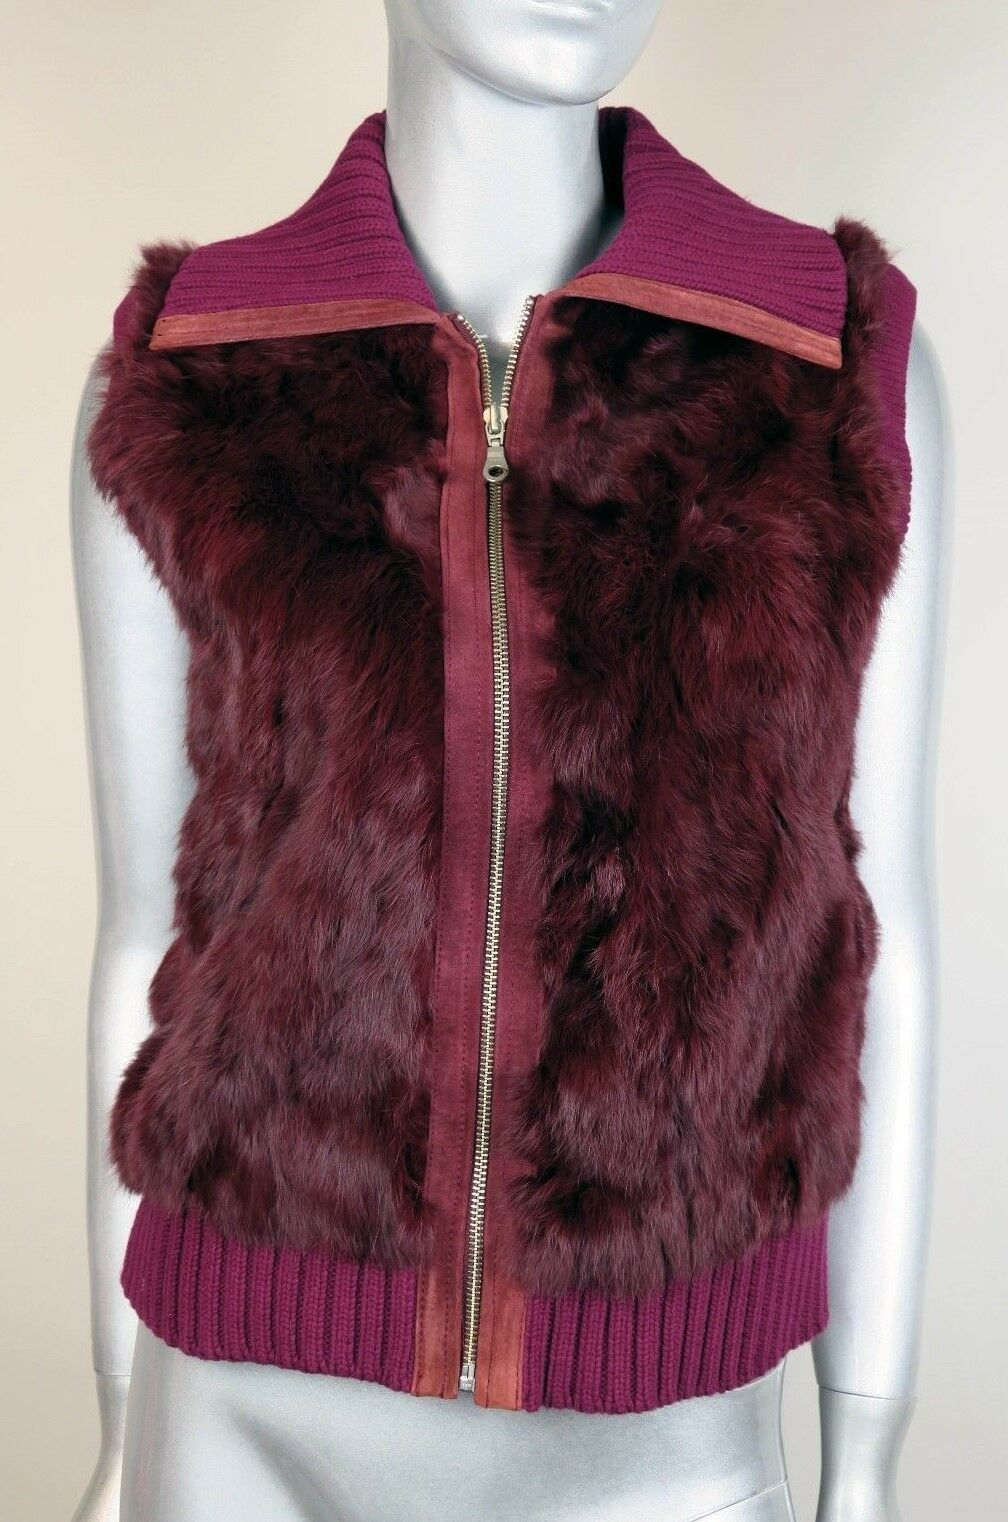 Wilsons Maxima Maroon Genuine Rabbit Fur Vest w Leather Leather Leather Suede Trim Women's Large ea408a